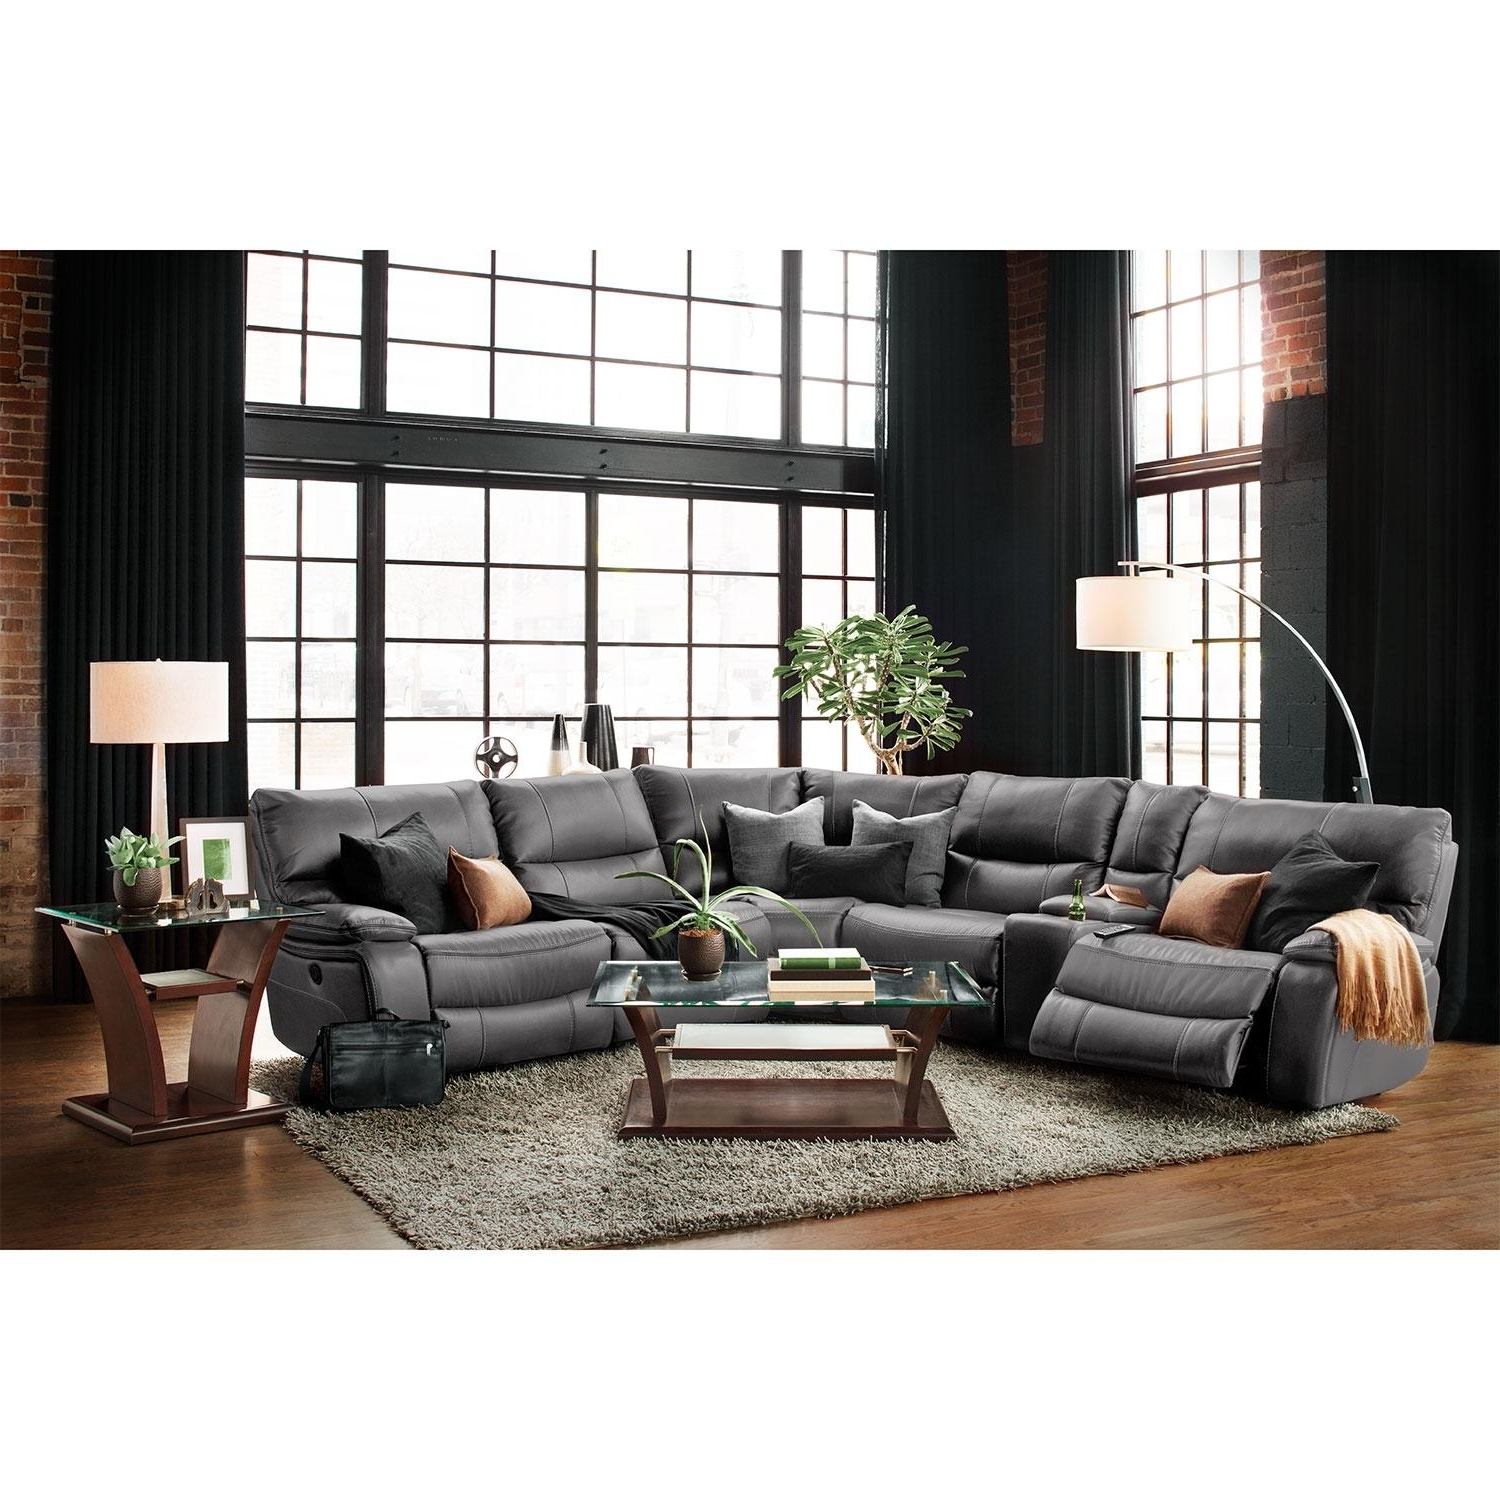 Preferred Furniture : Sectional Couch Costco Best Of La Z Boy Aspen Seven intended for Victoria Bc Sectional Sofas